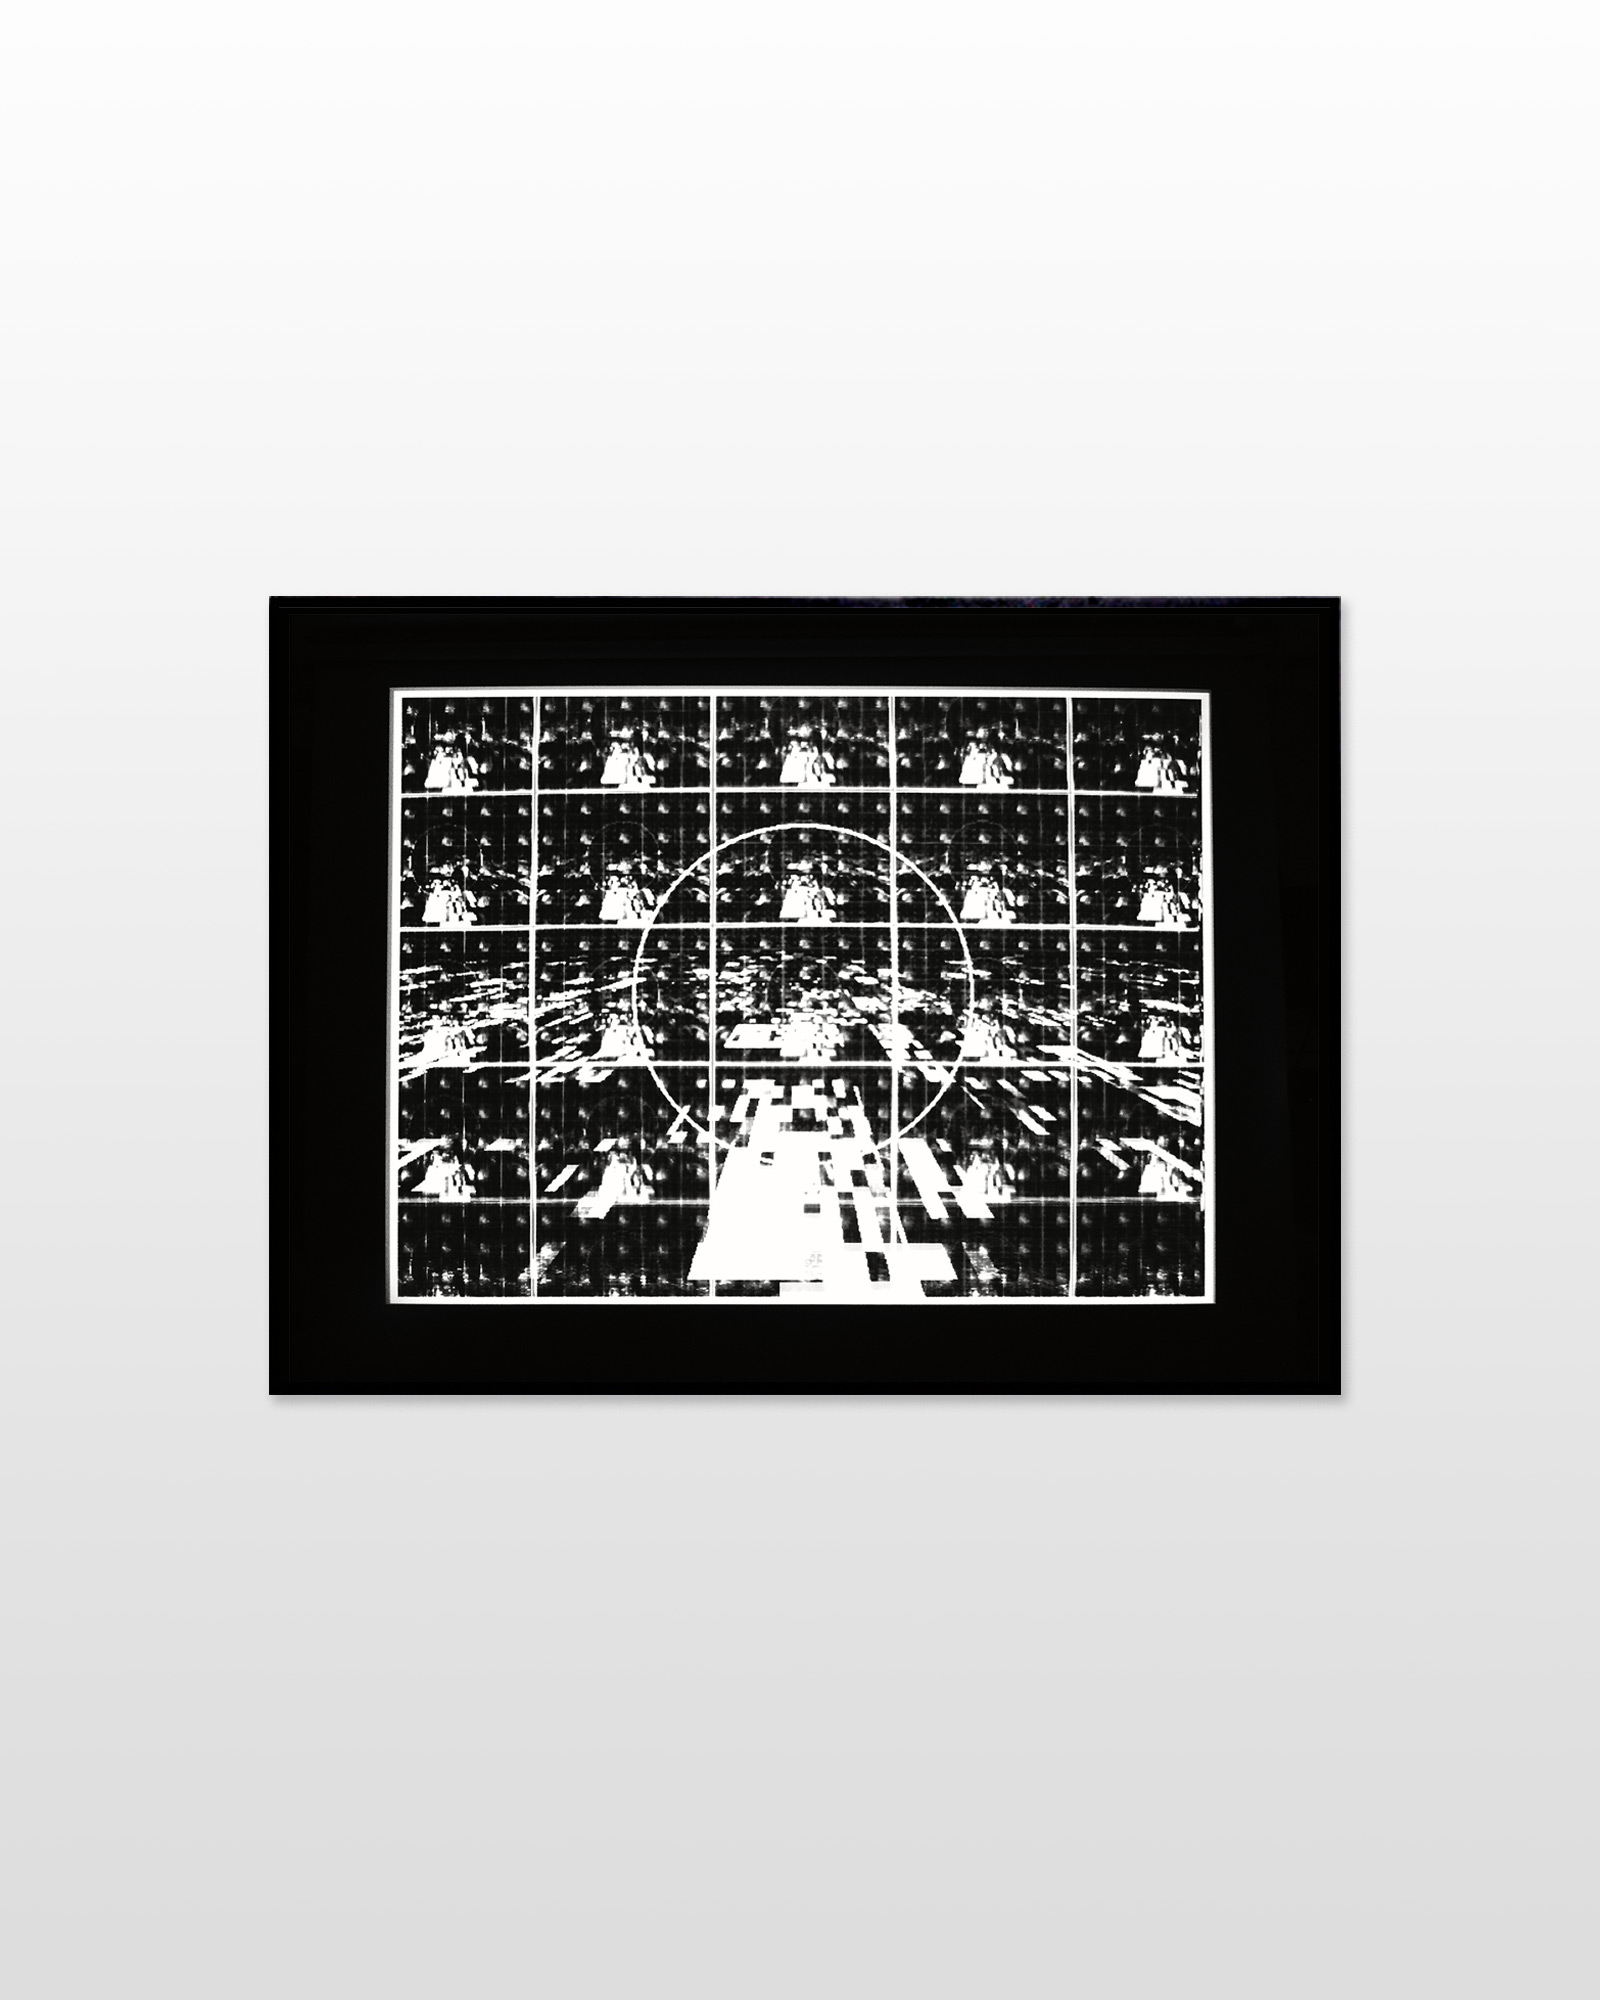 posters-prints, photographs, giclee-print, new-media, abstract, geometric, minimalistic, monochrome, architecture, movement, patterns, science, technology, black, grey, white, paper, photographs, abstract-forms, architectural, black-and-white, contemporary-art, cubes, danish, design, interior, interior-design, modern, modern-art, nordic, outer-space, posters, room, scandinavien, Buy original high quality art. Paintings, drawings, limited edition prints & posters by talented artists.